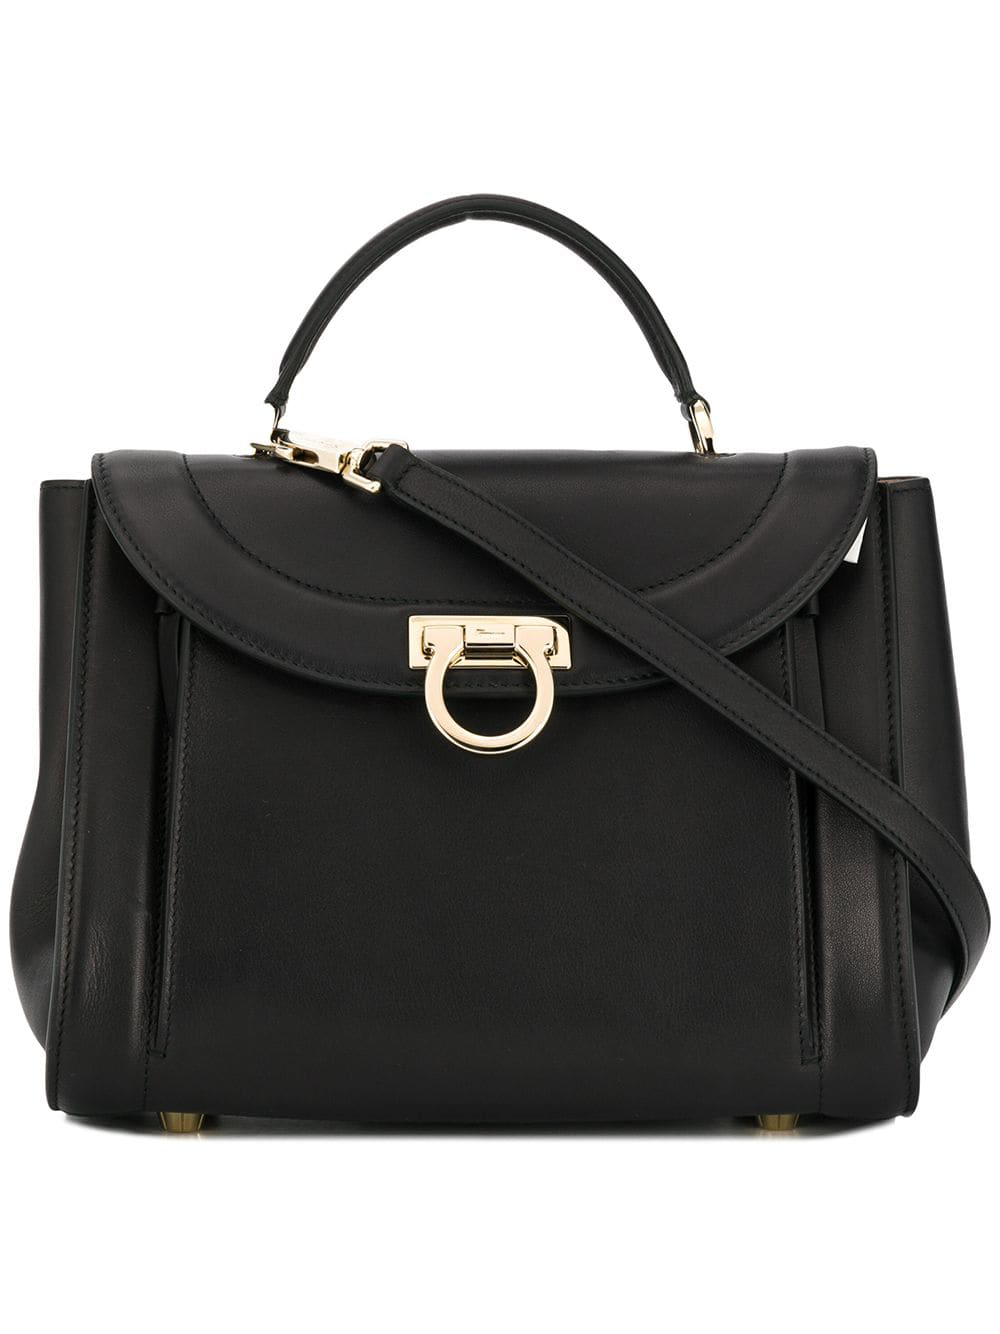 ea6f1feb353 Salvatore Ferragamo Gancini Tote Bag - Black | ModeSens